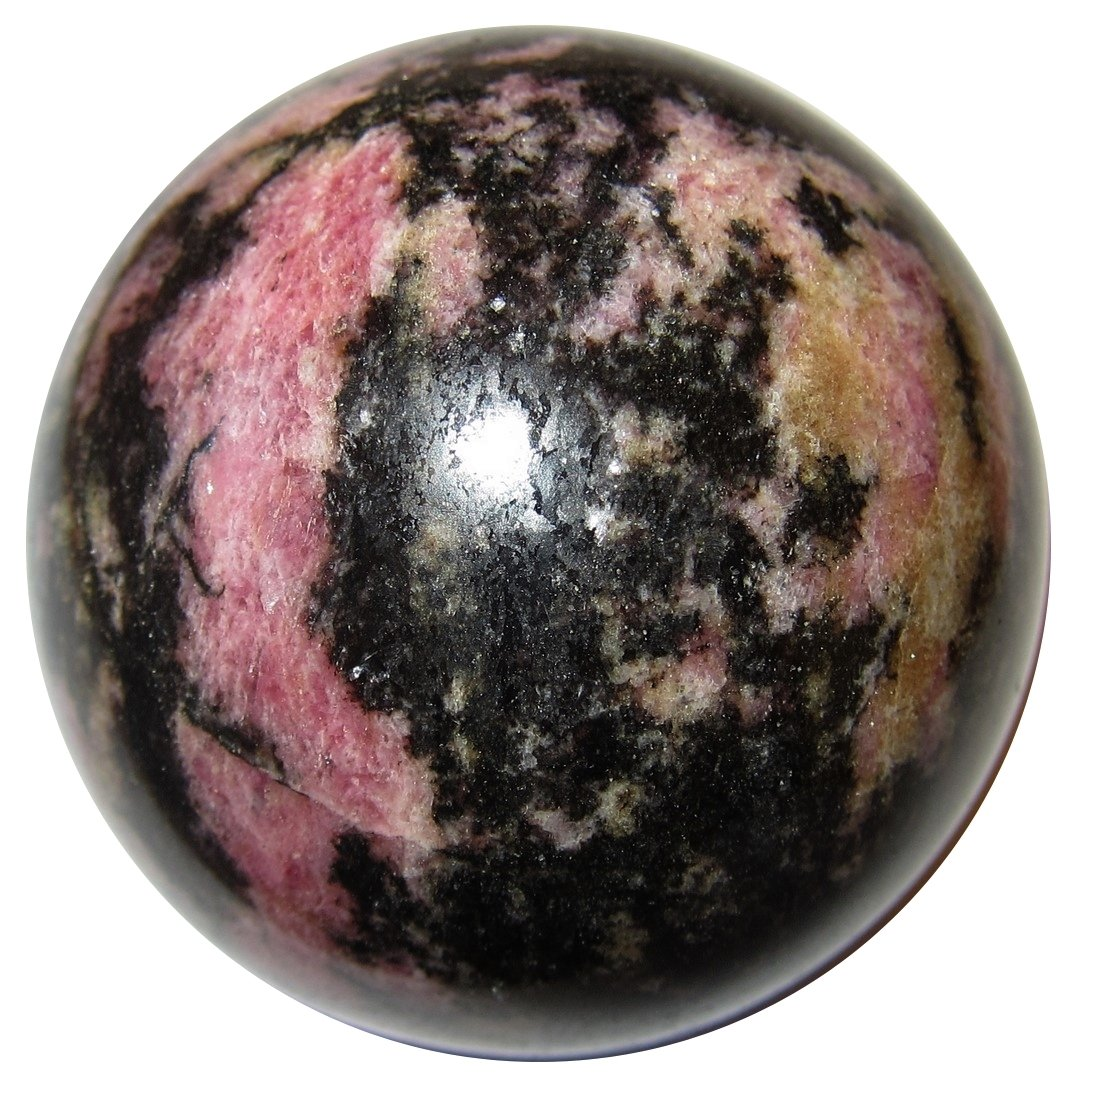 Rhodonite Ball 67 Pink Black Yellow Polished Crystal Madagascar Collection Stone Top Grade Beauty 2.4'' by SatinCrystals